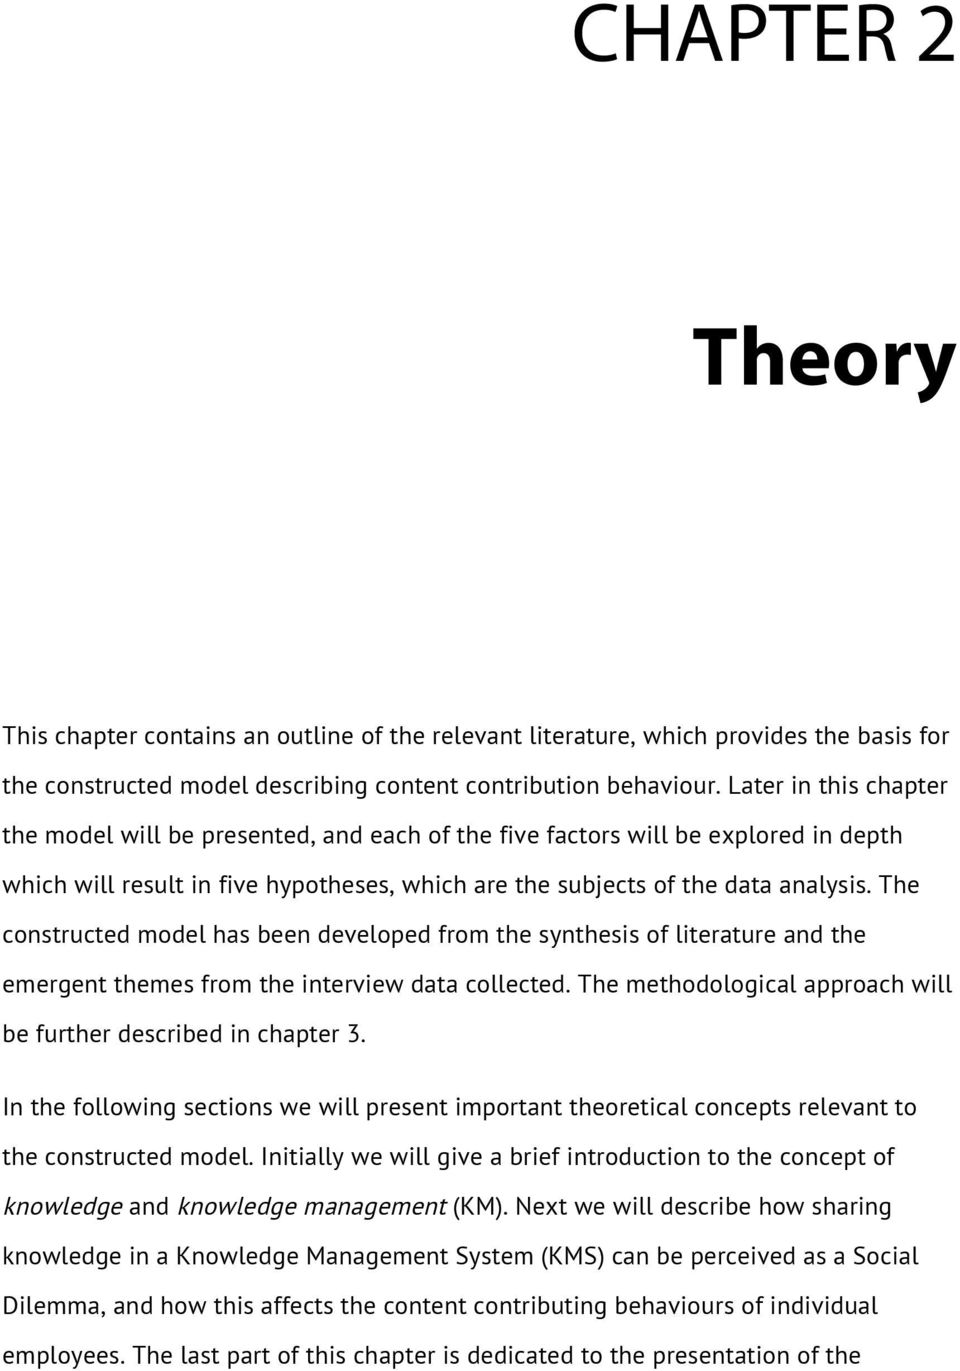 The constructed model has been developed from the synthesis of literature and the emergent themes from the interview data collected. The methodological approach will be further described in chapter 3.